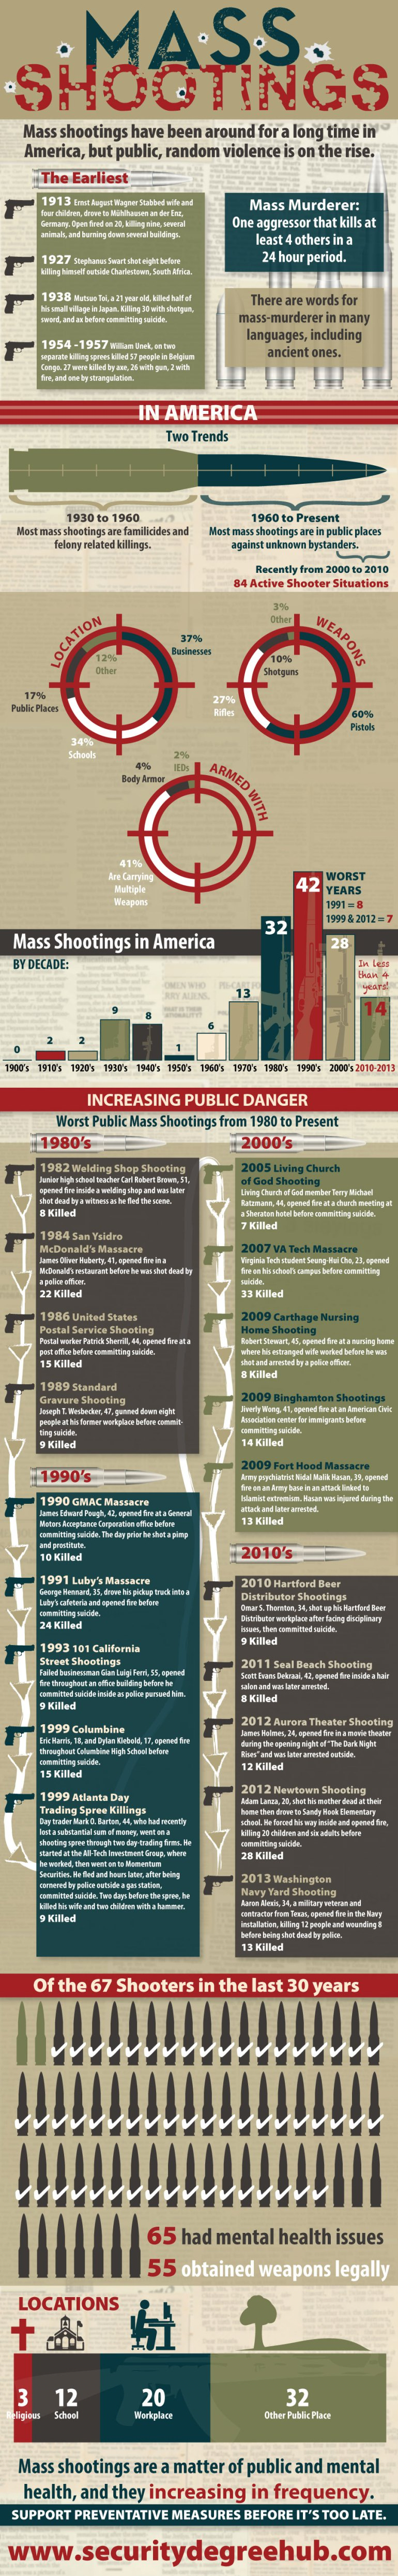 a short history of mass shootings, infographic